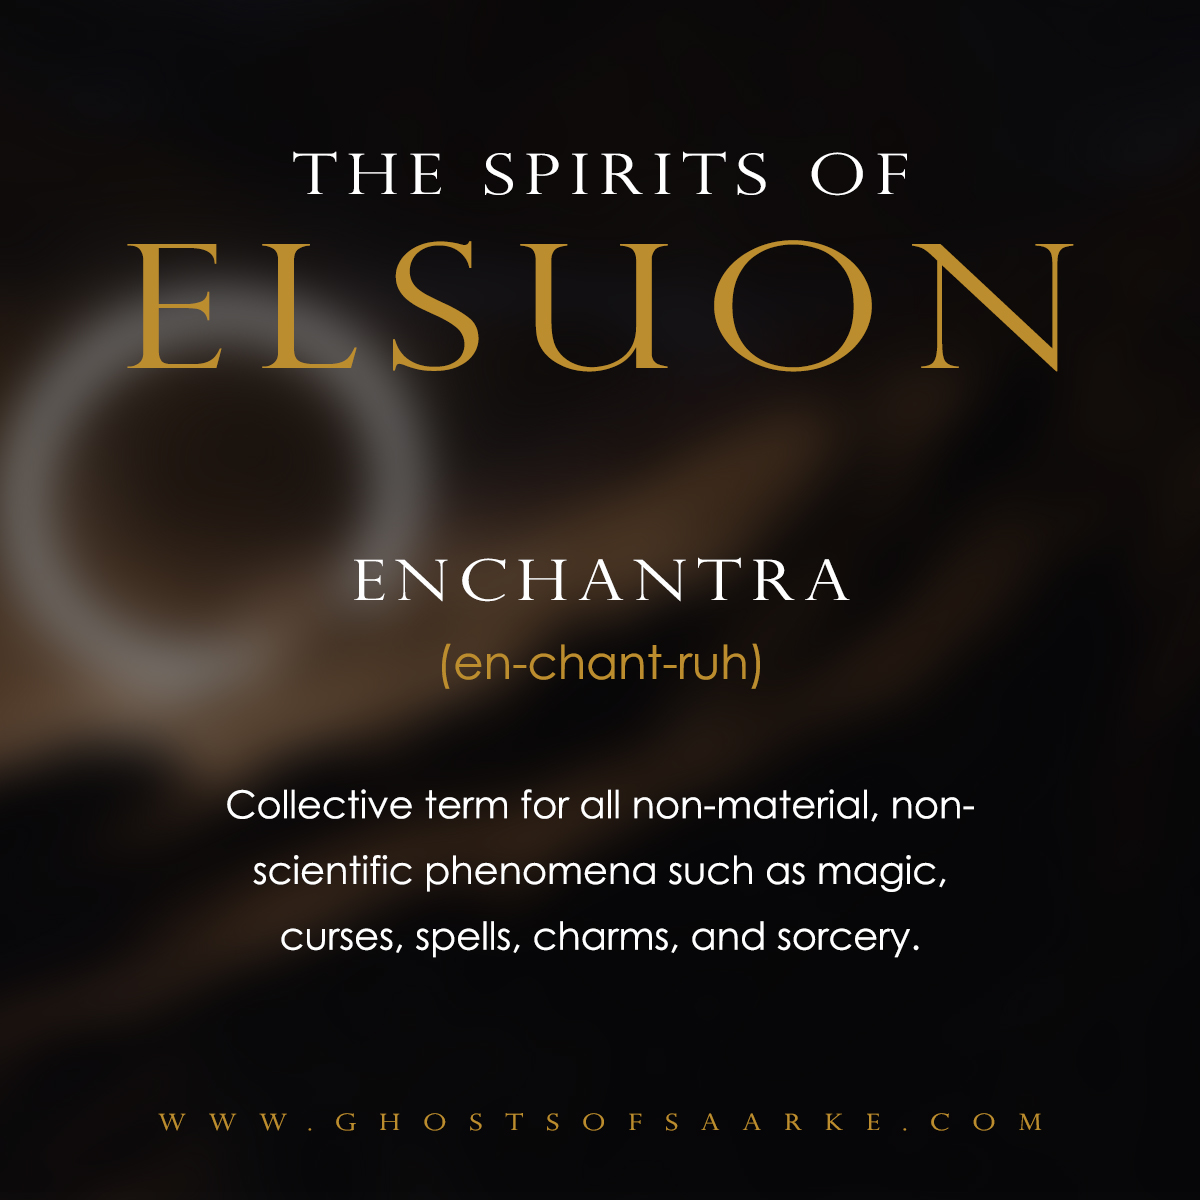 Spirits - Enchantra